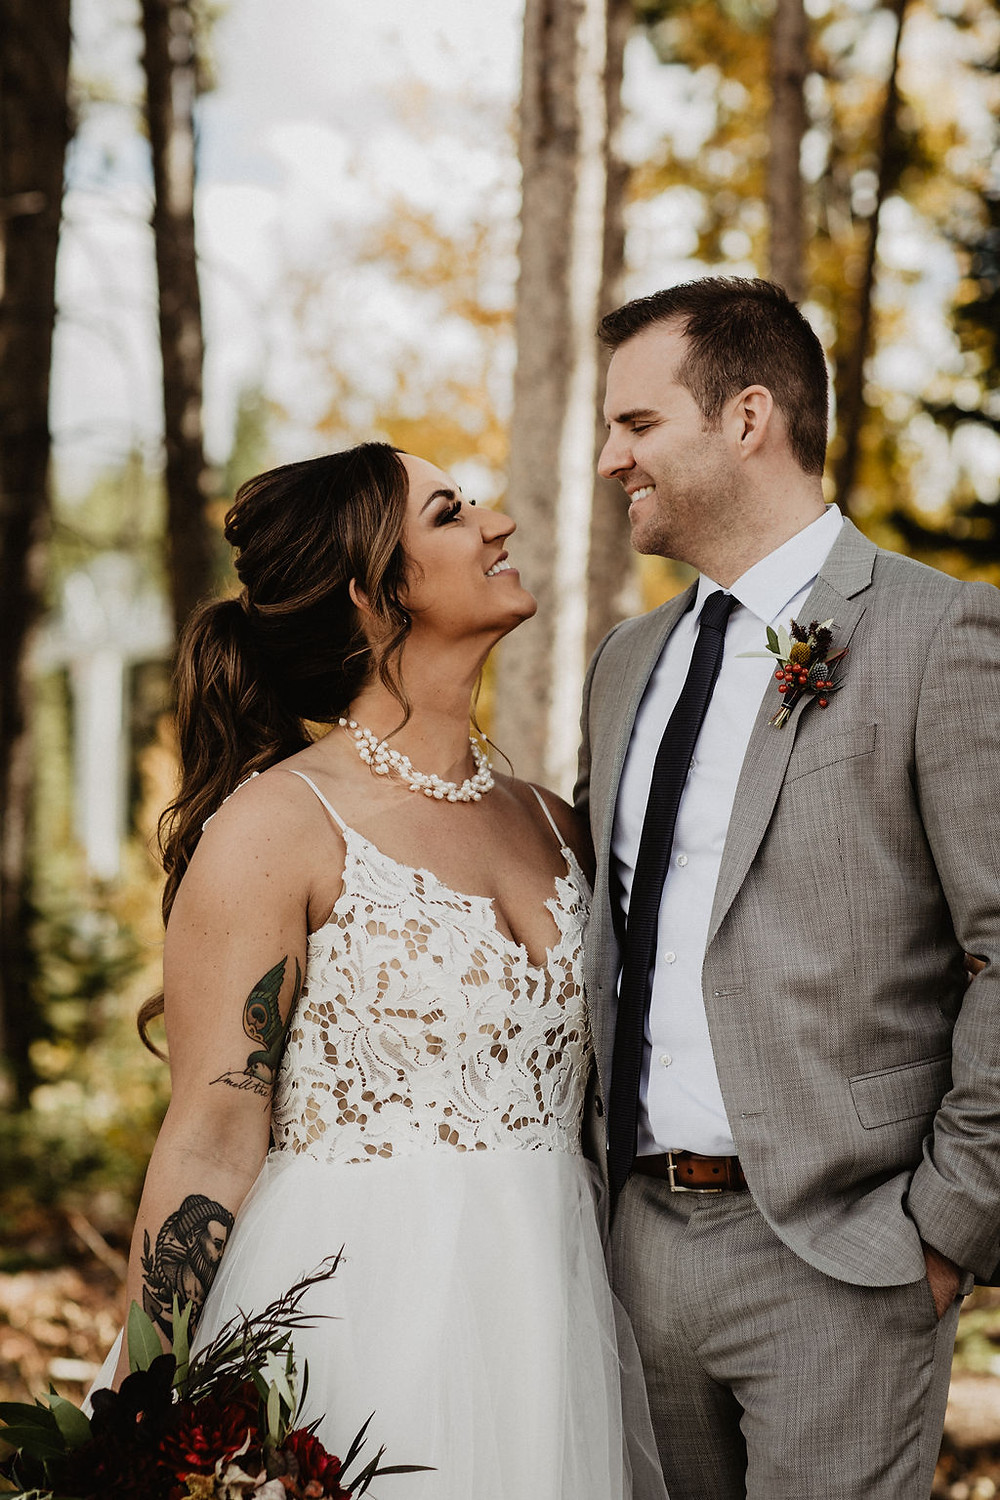 Ten Mile Station Wedding - Breckenride Wedding - First Look